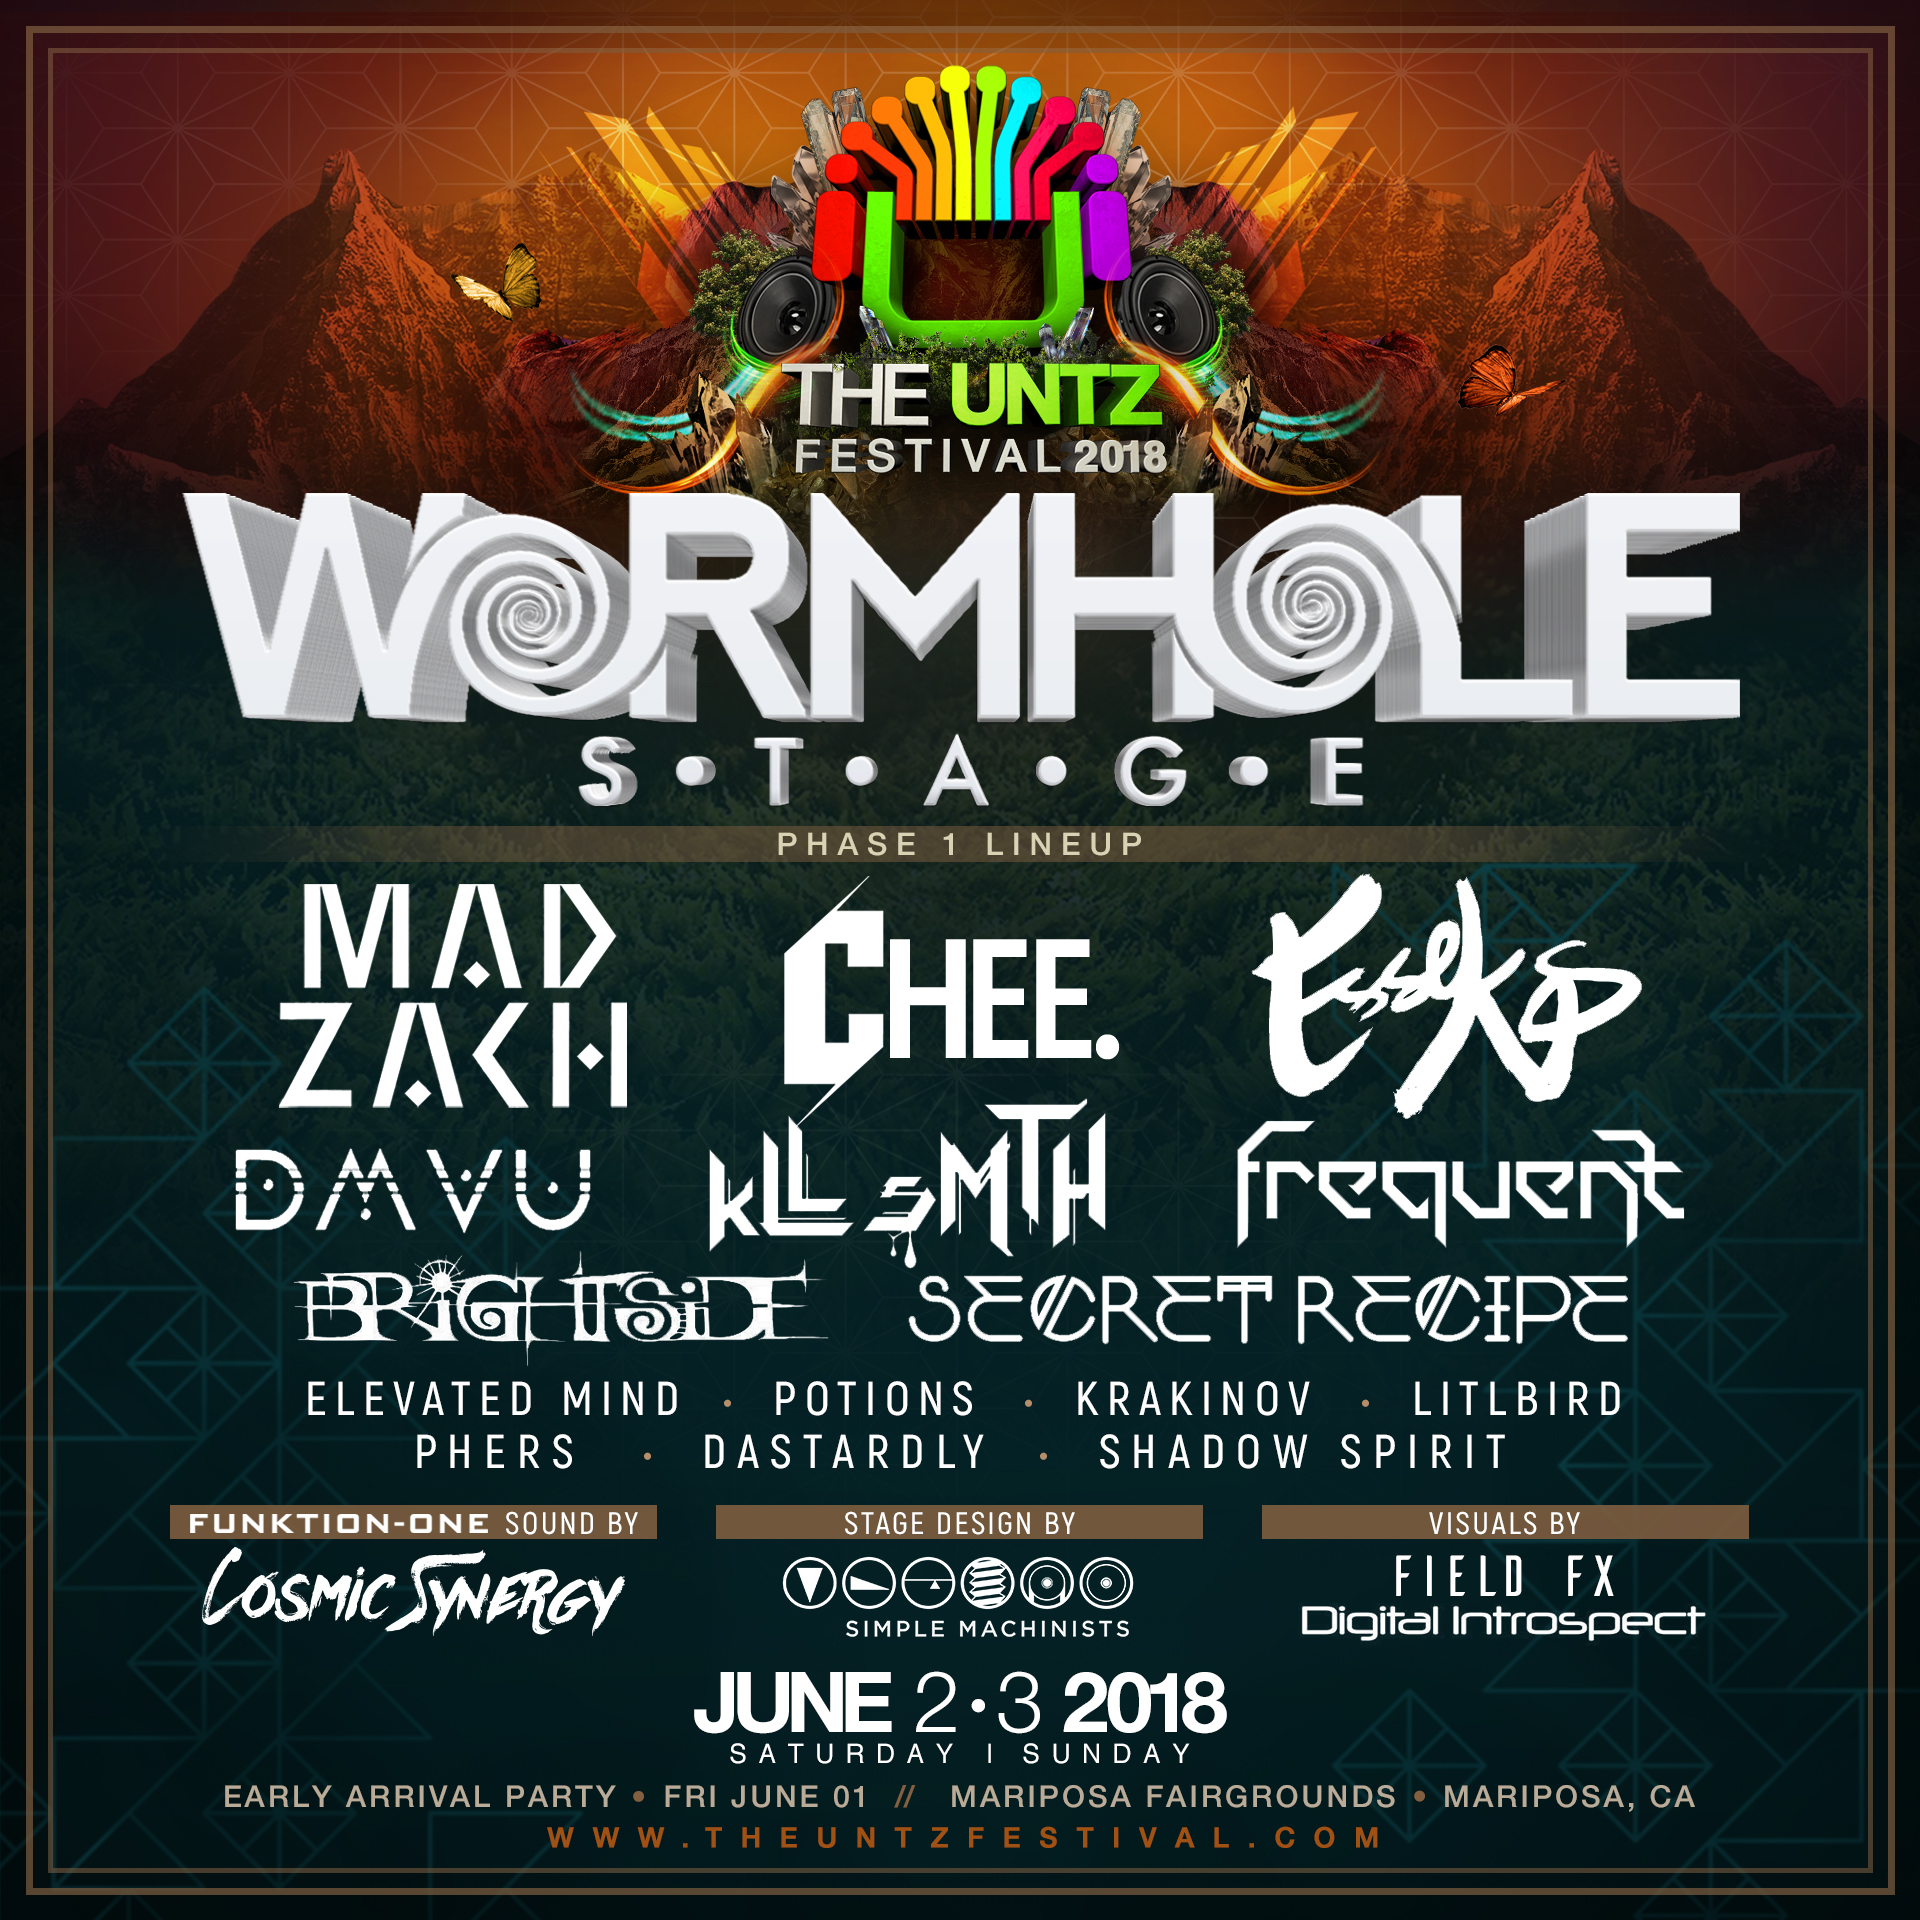 Wormhole stage The Untz Festival 2018